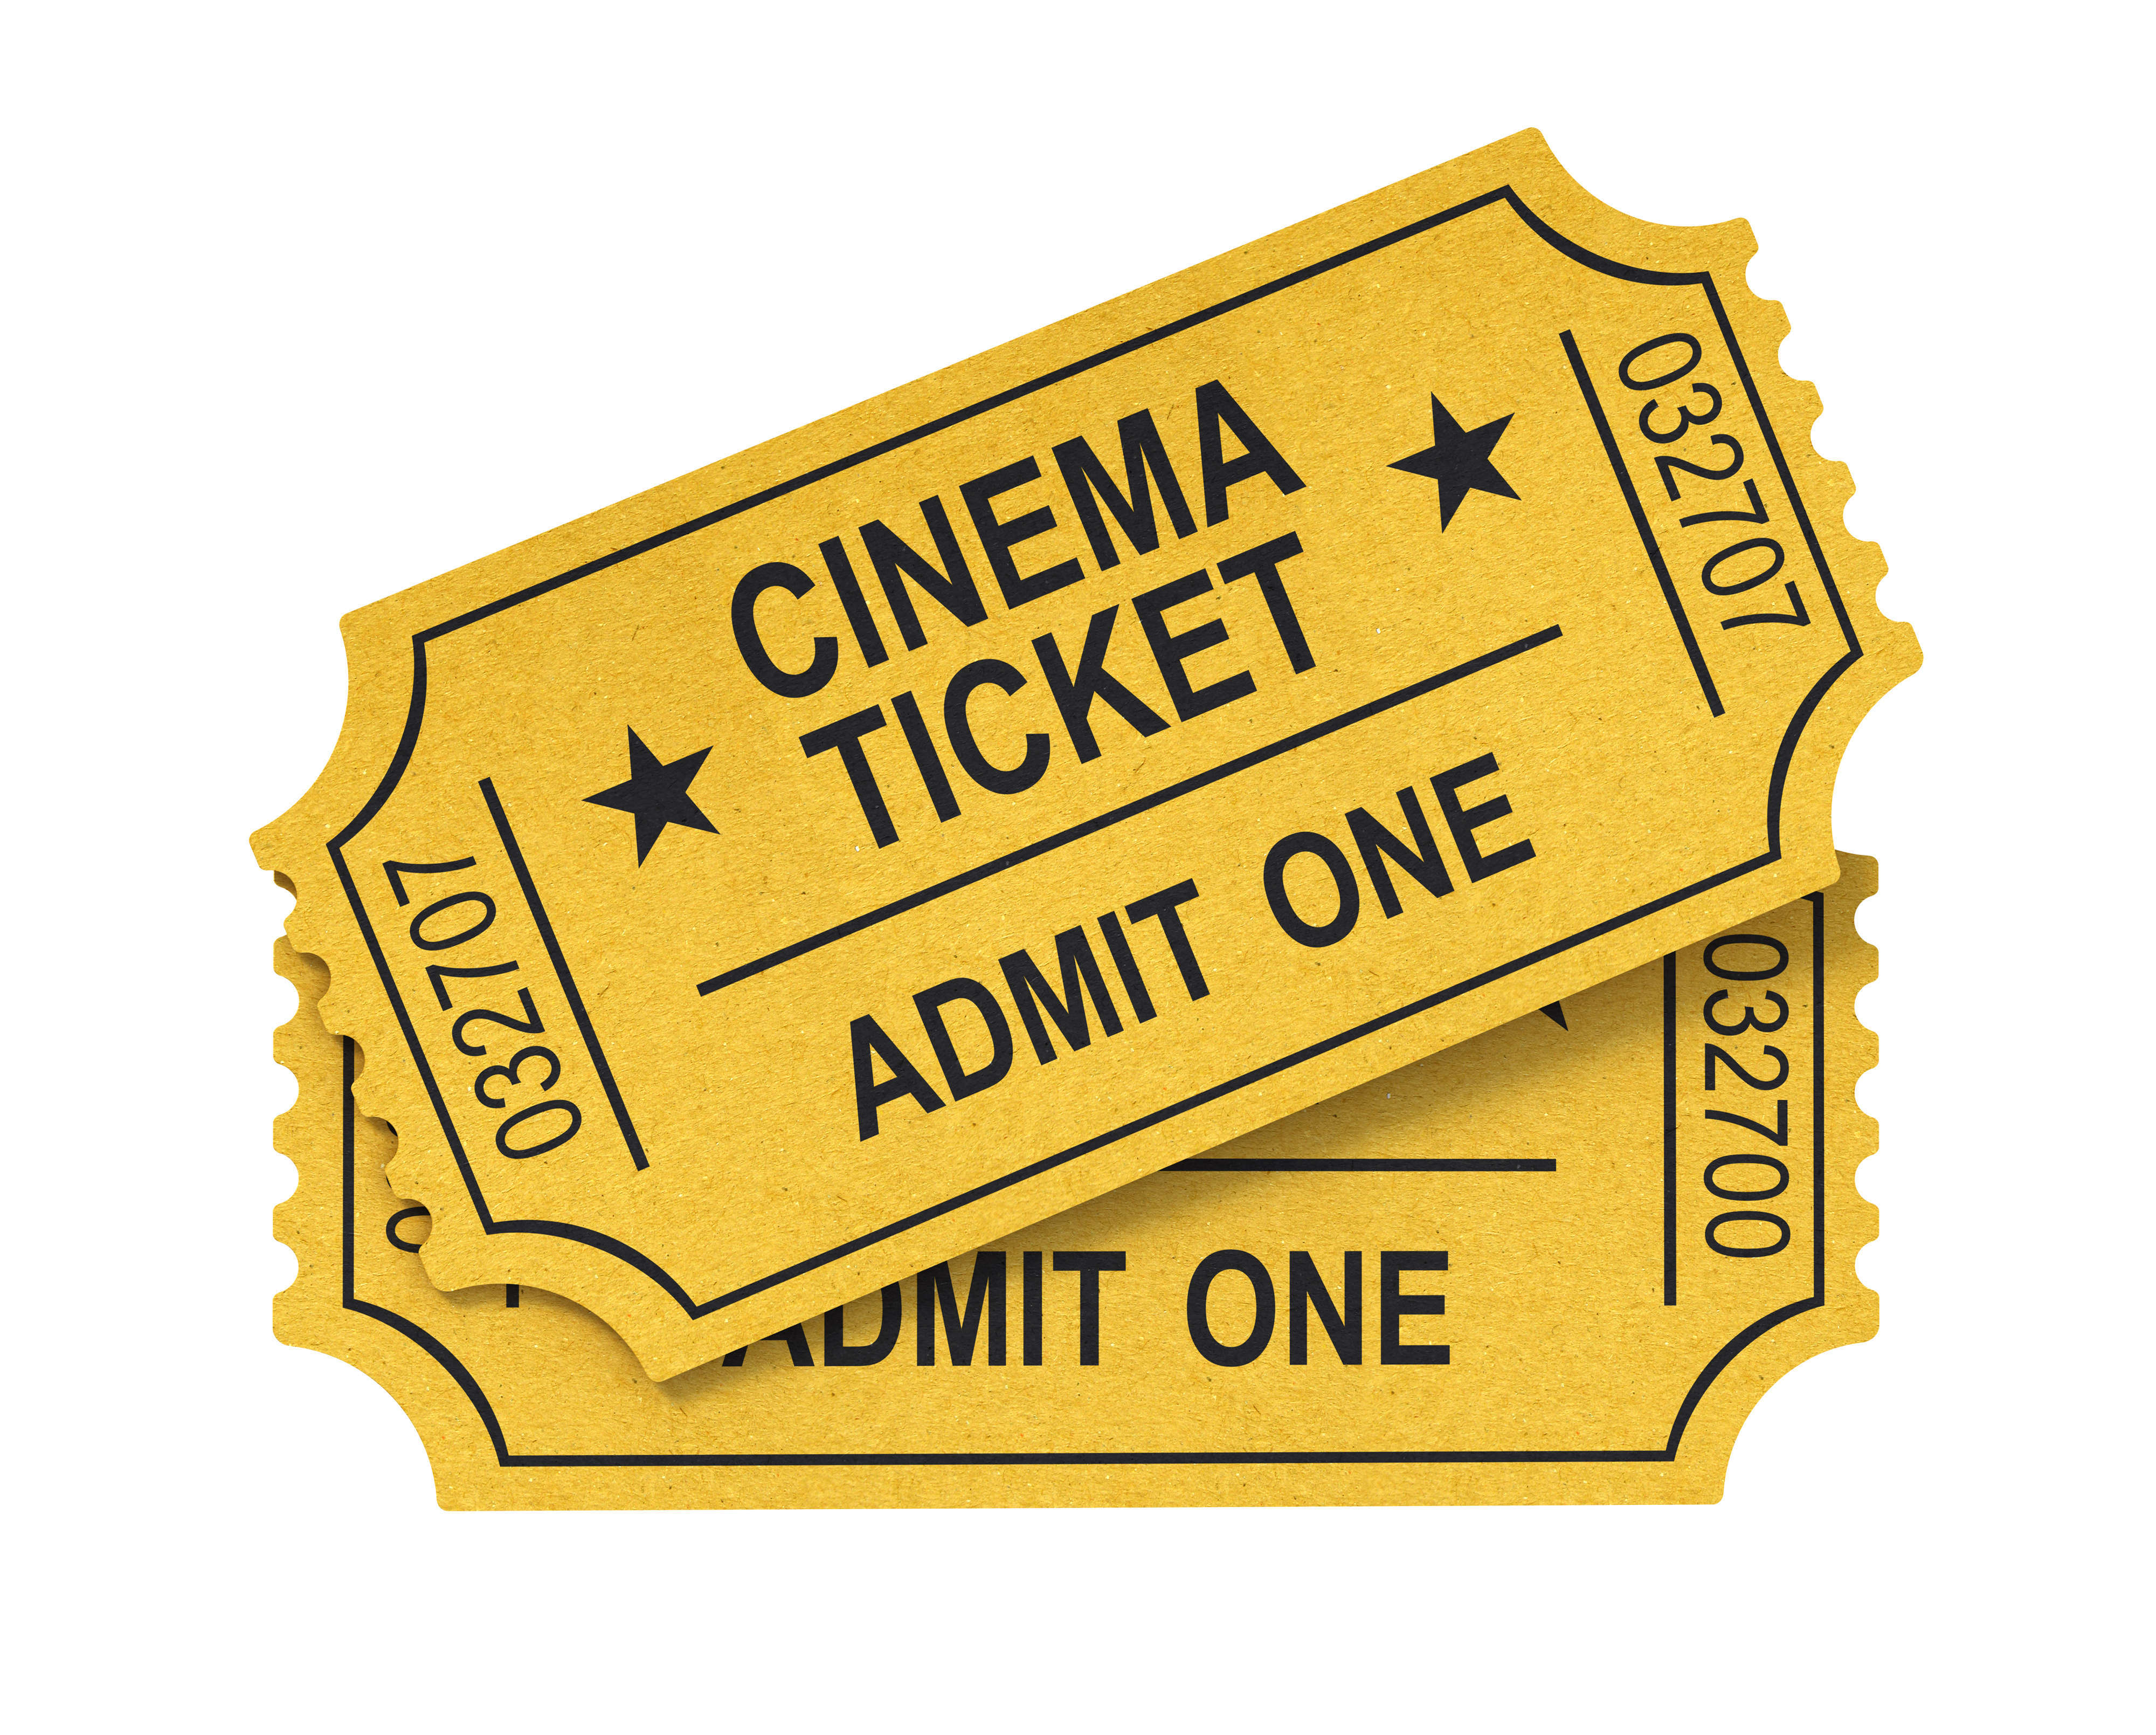 Movie ticket pictures clipart image royalty free library 16+ Movie Tickets Clipart   ClipartLook image royalty free library